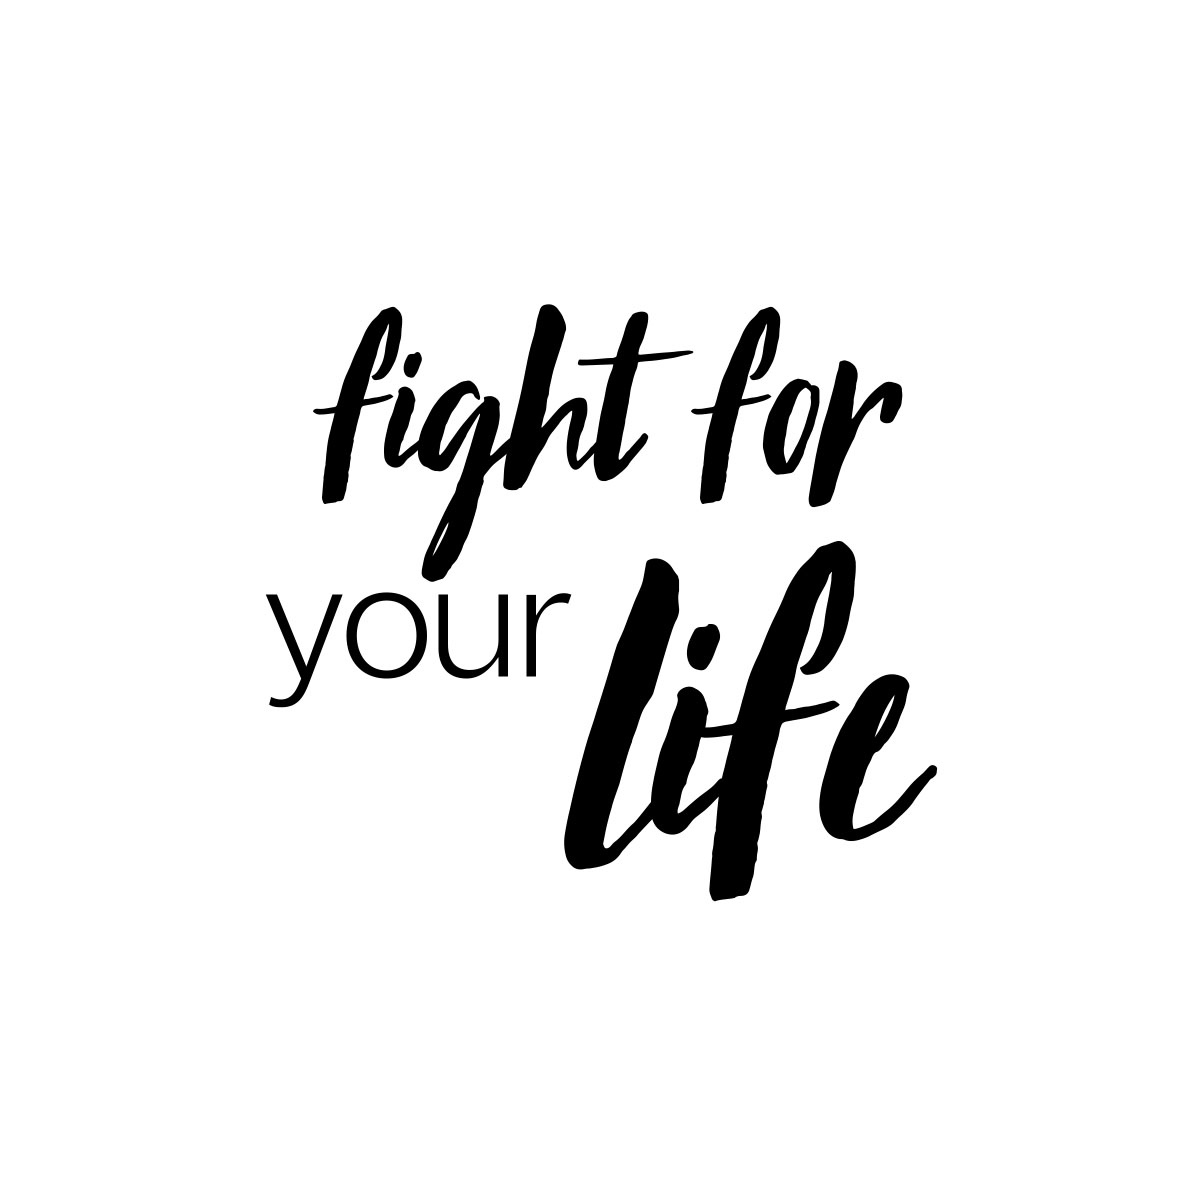 Fight for your life.  #inspirational #inspirationalquotes #quote #quotes #motivation #inspiration #motivationalquotes #quotestoliveby #quotesaboutlife #quotestoinspire #quotestags #quotesforlife #lifequotes #positivequotes #inspiringquotes #quoteoftheday #quotesoftheday